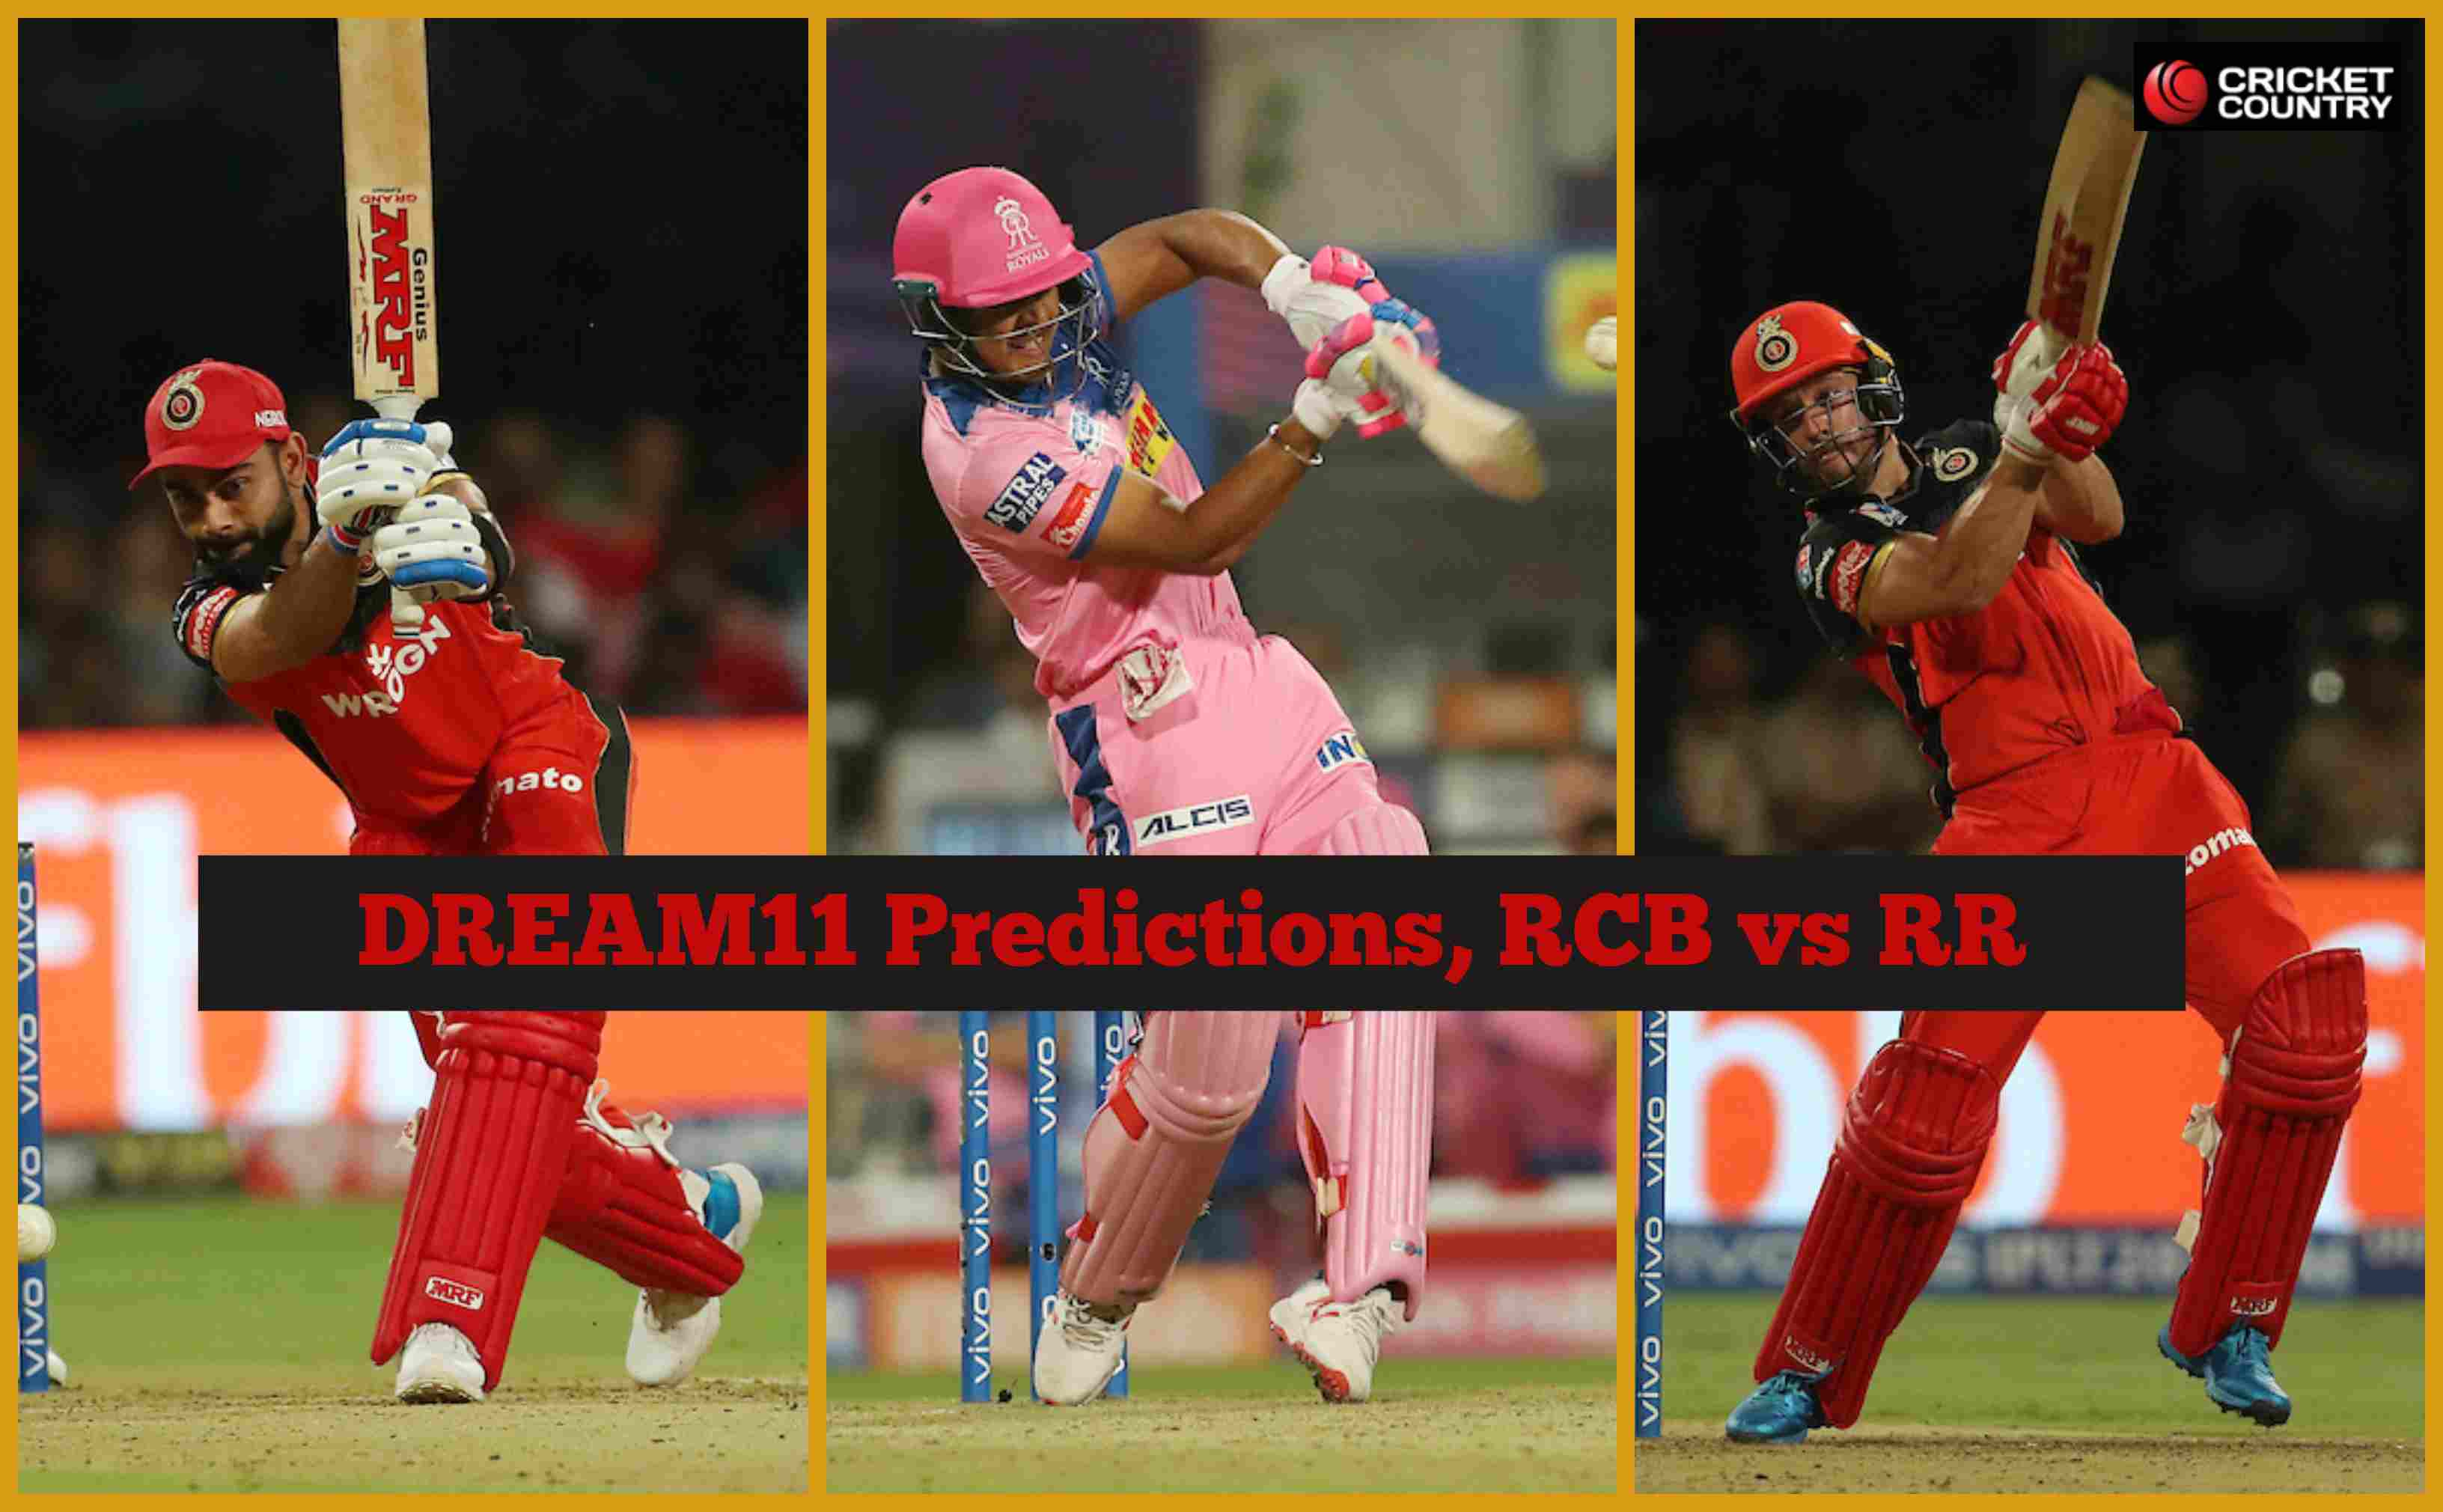 Dream11 Prediction: RCB vs RR Team Best Players to Pick for Today's IPL T20 Match between Royal Challengers and Royals at 8PM